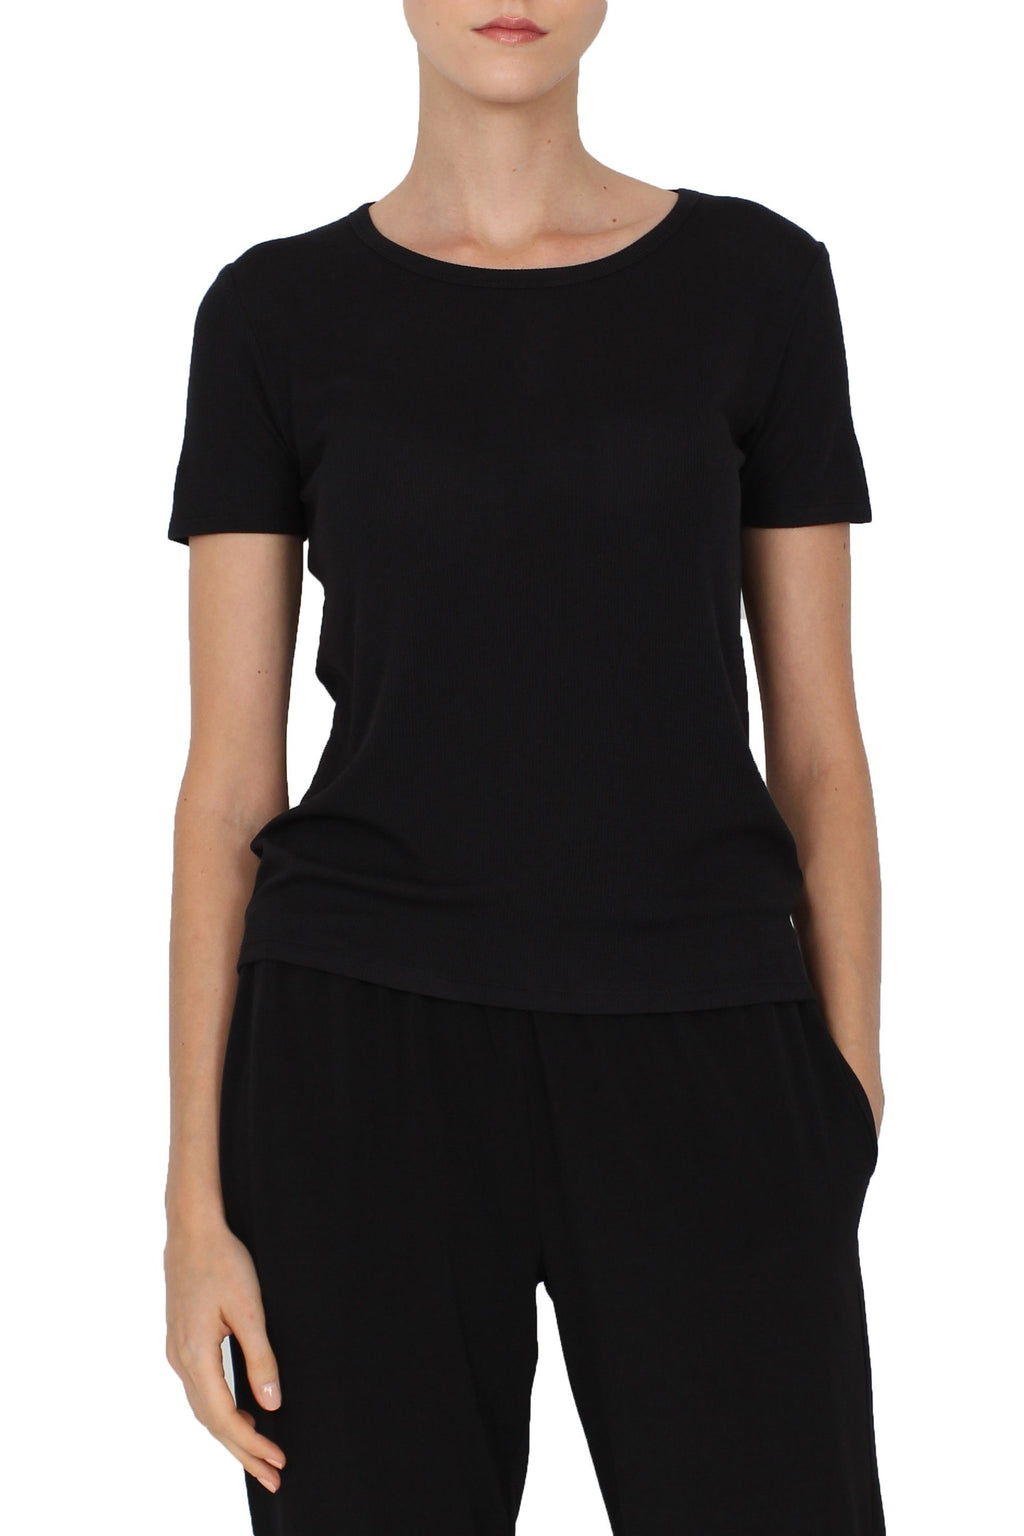 Ribbed Crew Neck Tee Marie France Van Damme 0/1 Black